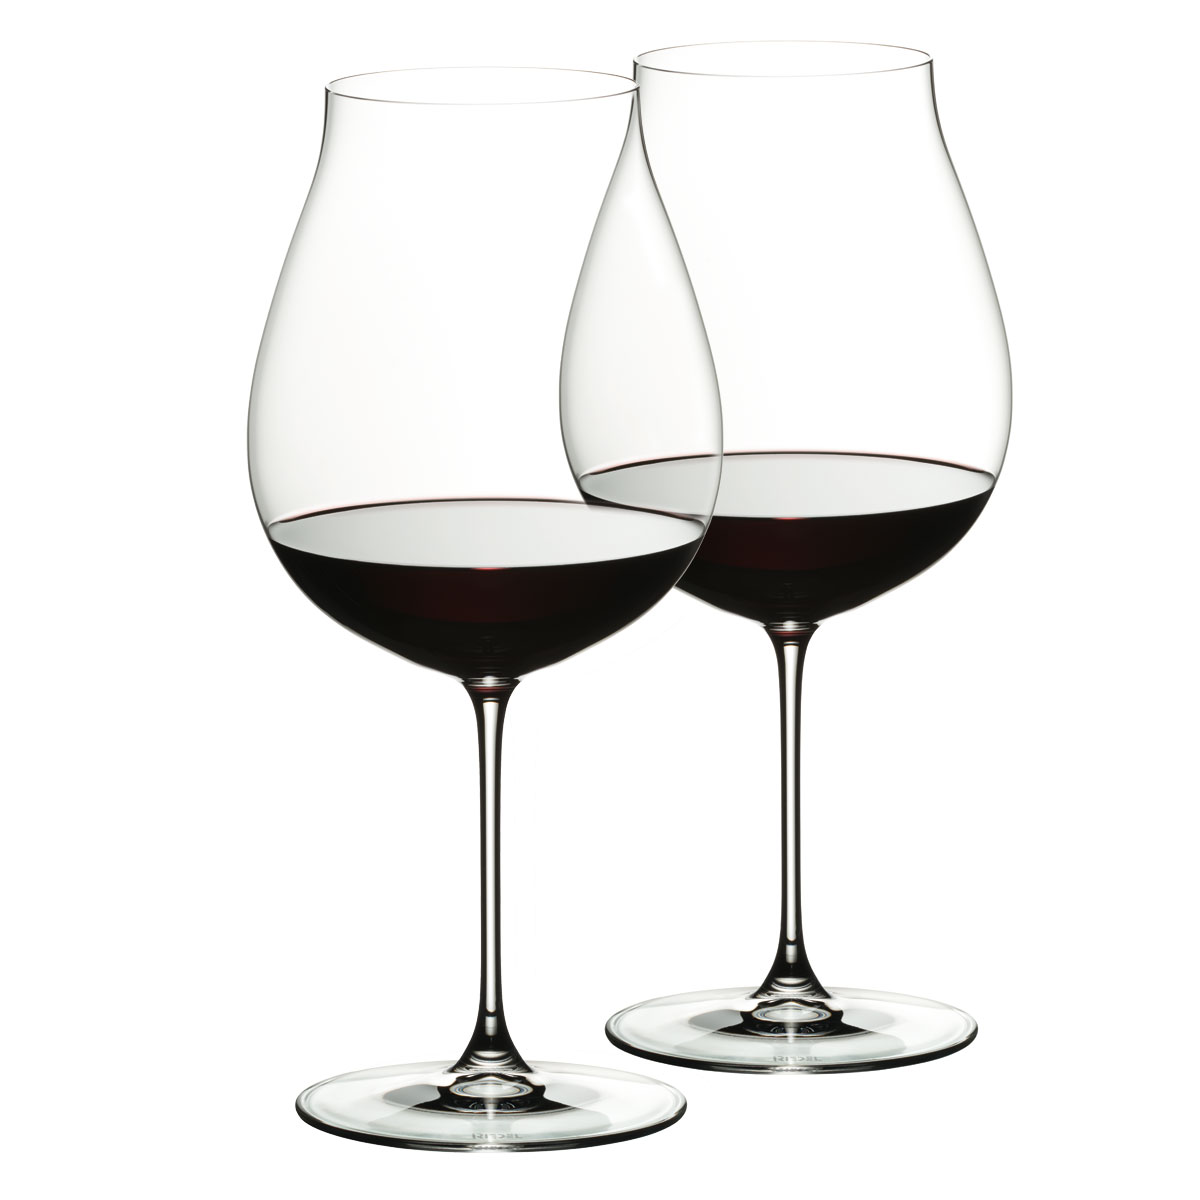 Riedel Veritas, New World Pinot Noir, Nebbiolo Wine Glasses, Pair